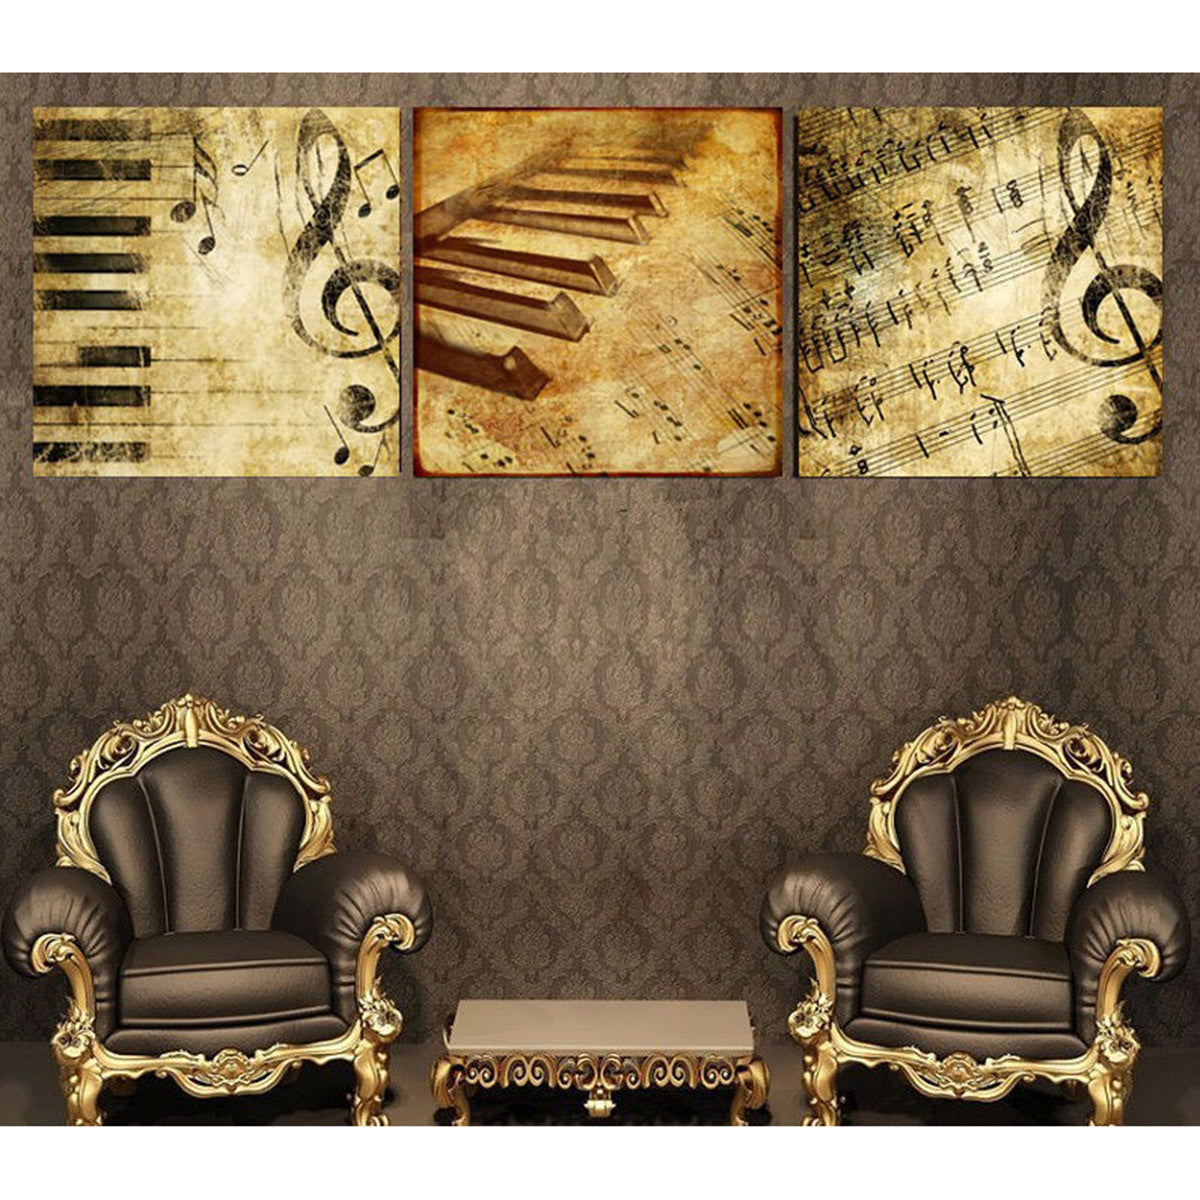 Limited Edition Classical Piano Music Notes 3 Piece Canvas